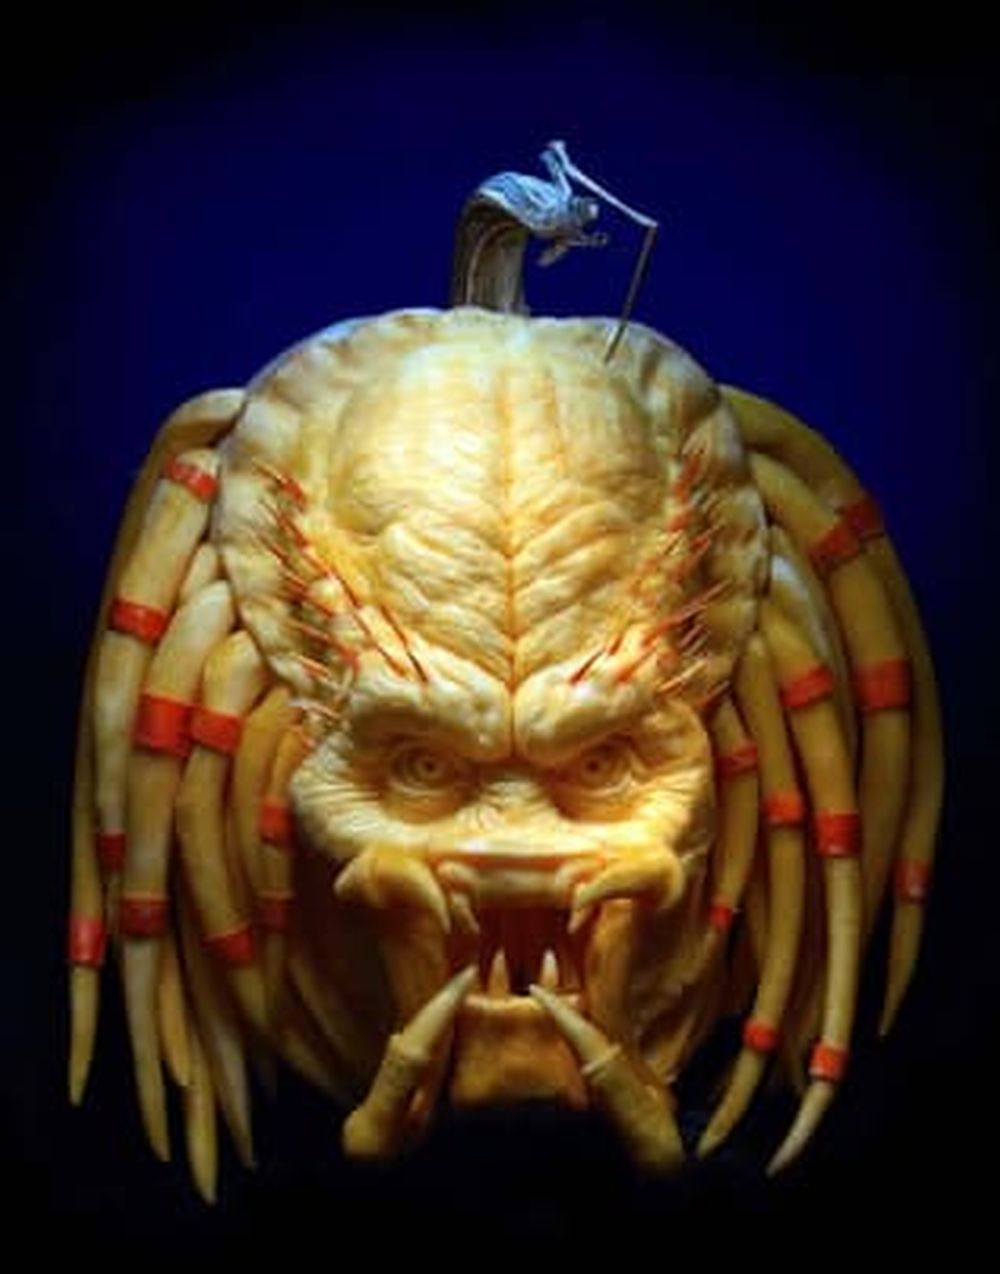 halloween pumpkin carving sculptures aliens villafane studios